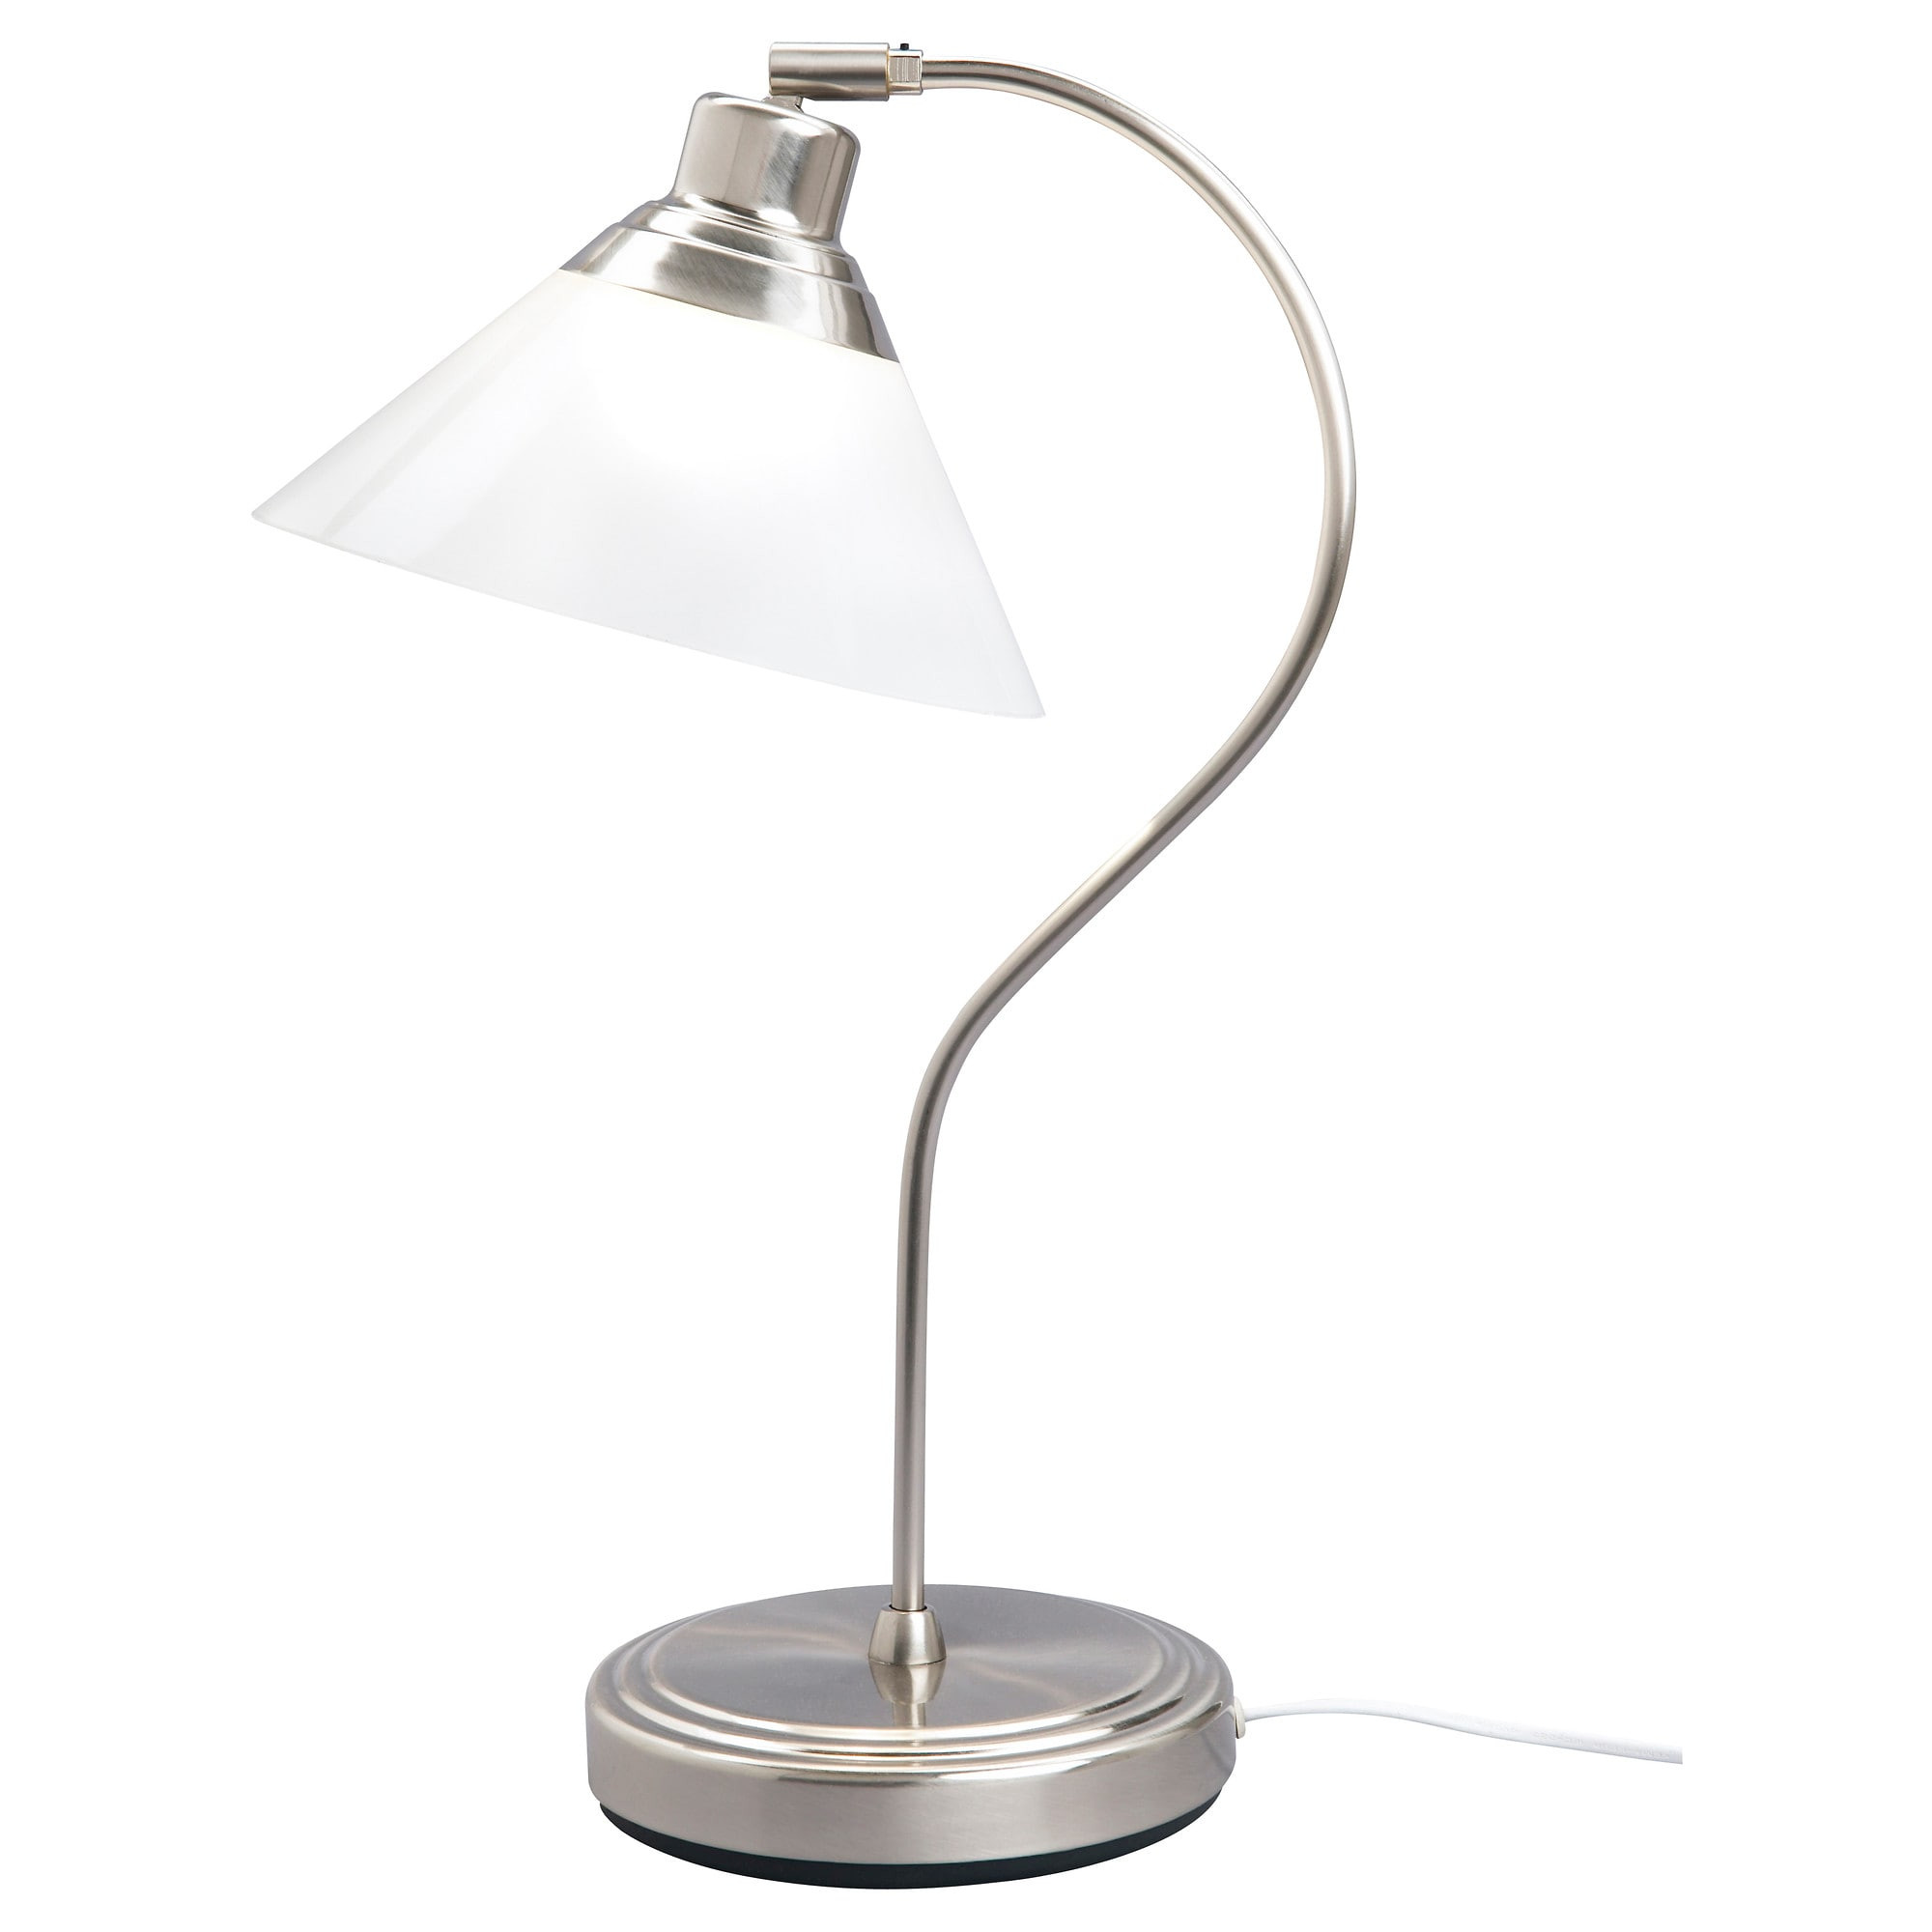 Best ideas about Ikea Desk Lamps . Save or Pin IKEA Now.